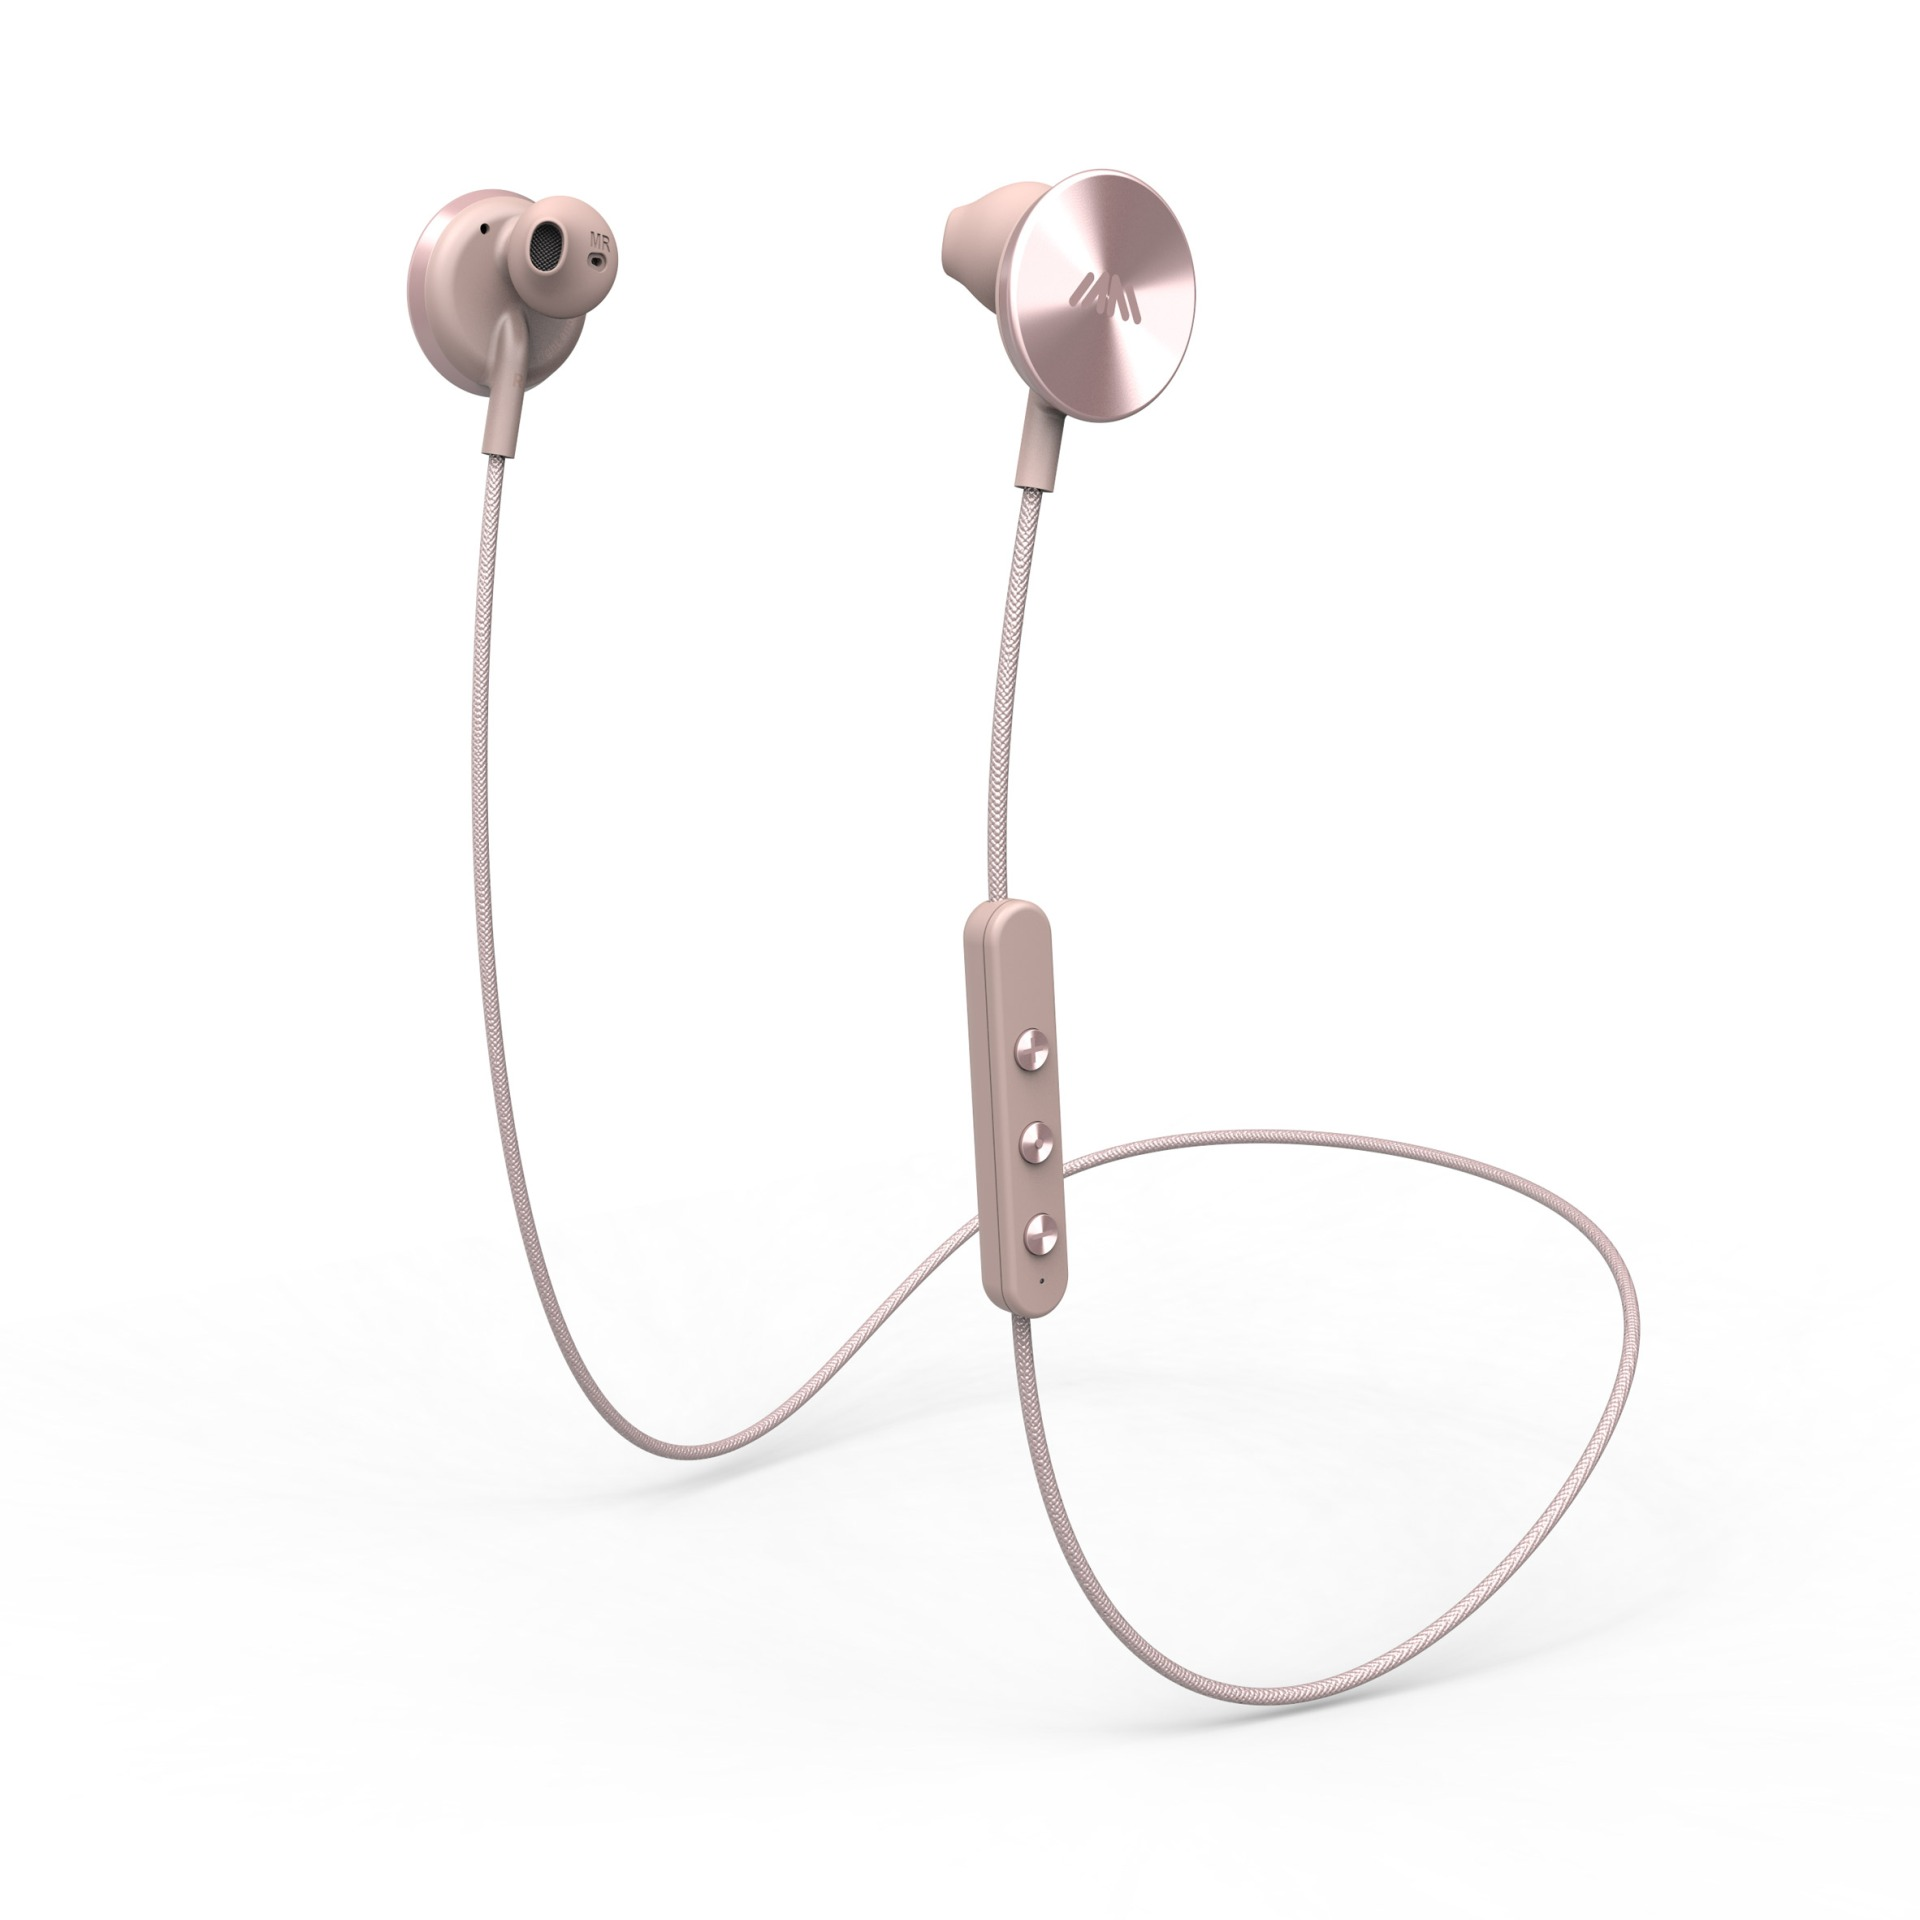 i-am-buttons-headphones-will-i-am-products-design-technology_dezeen_2364_col_12